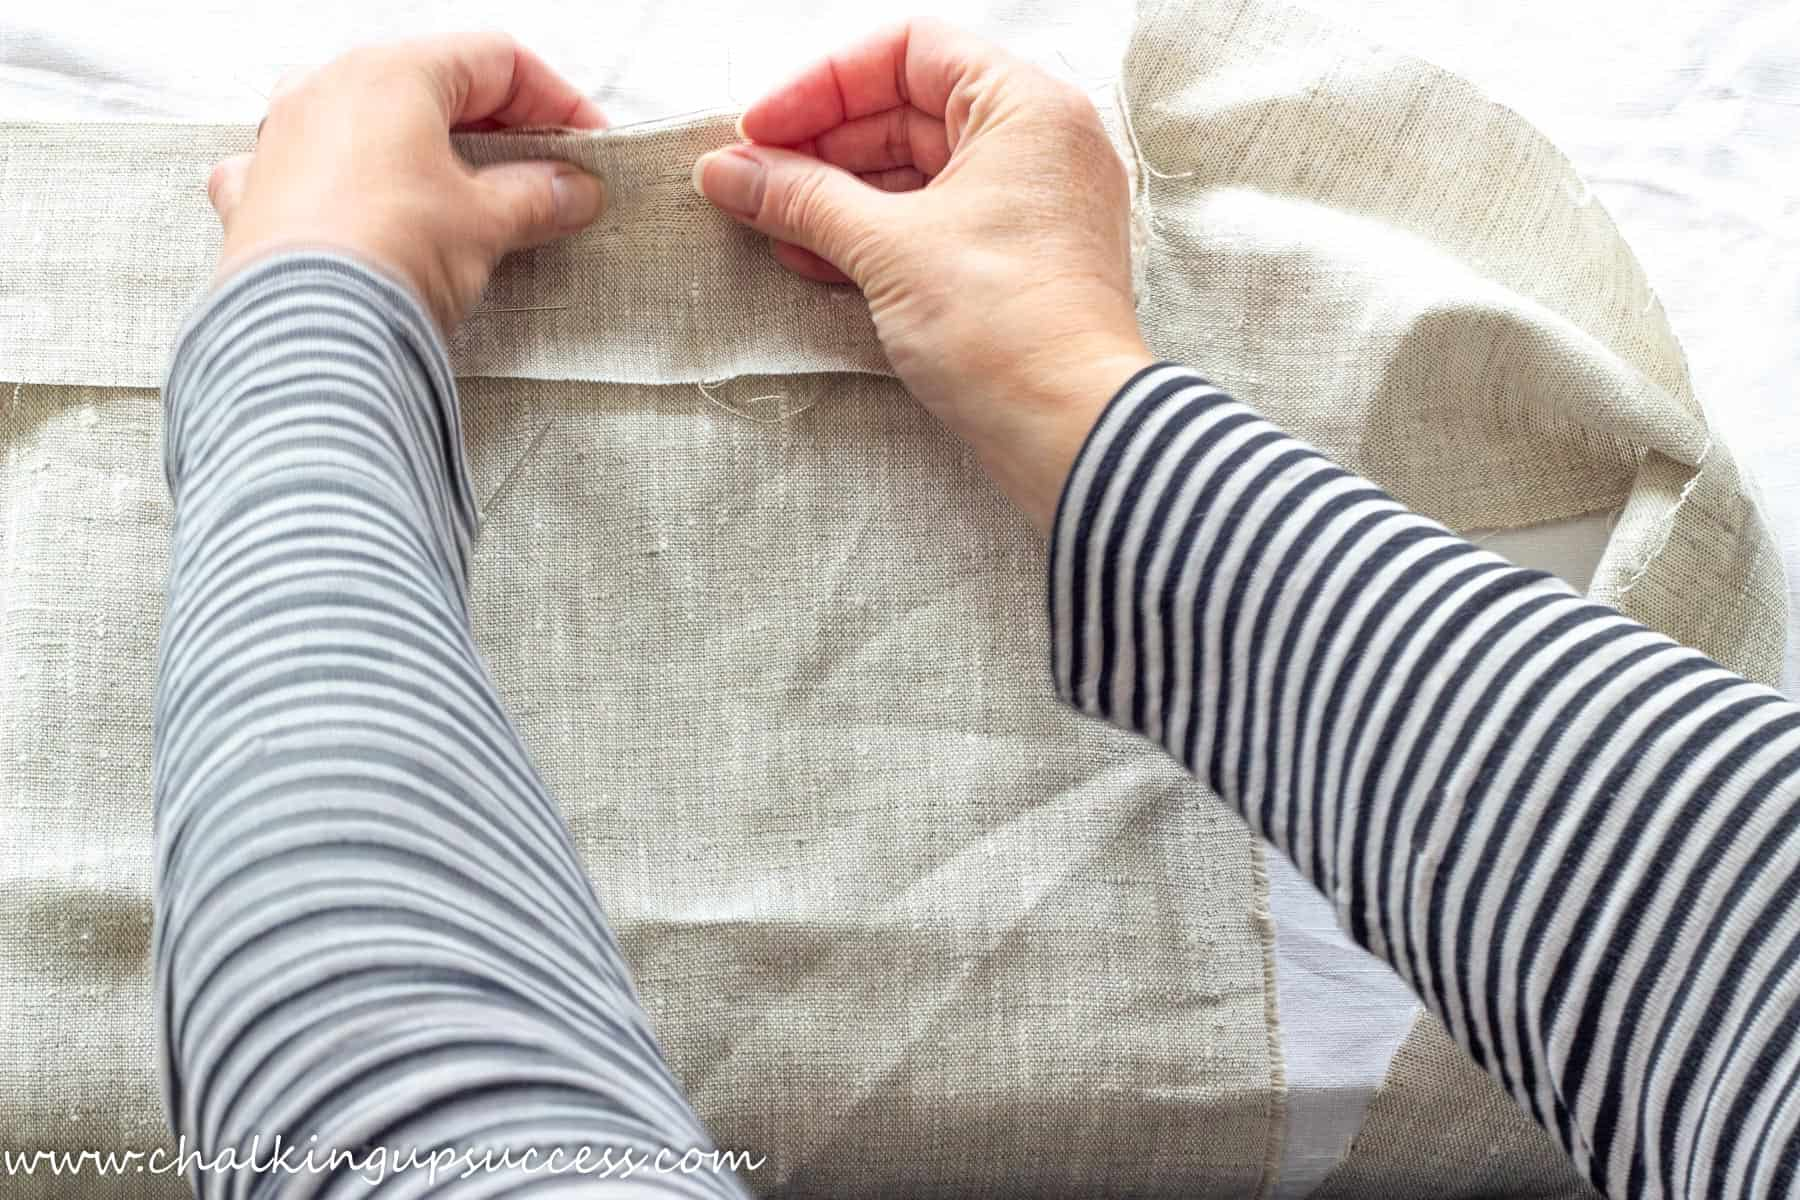 A person pinning together the sides of the linen fabric